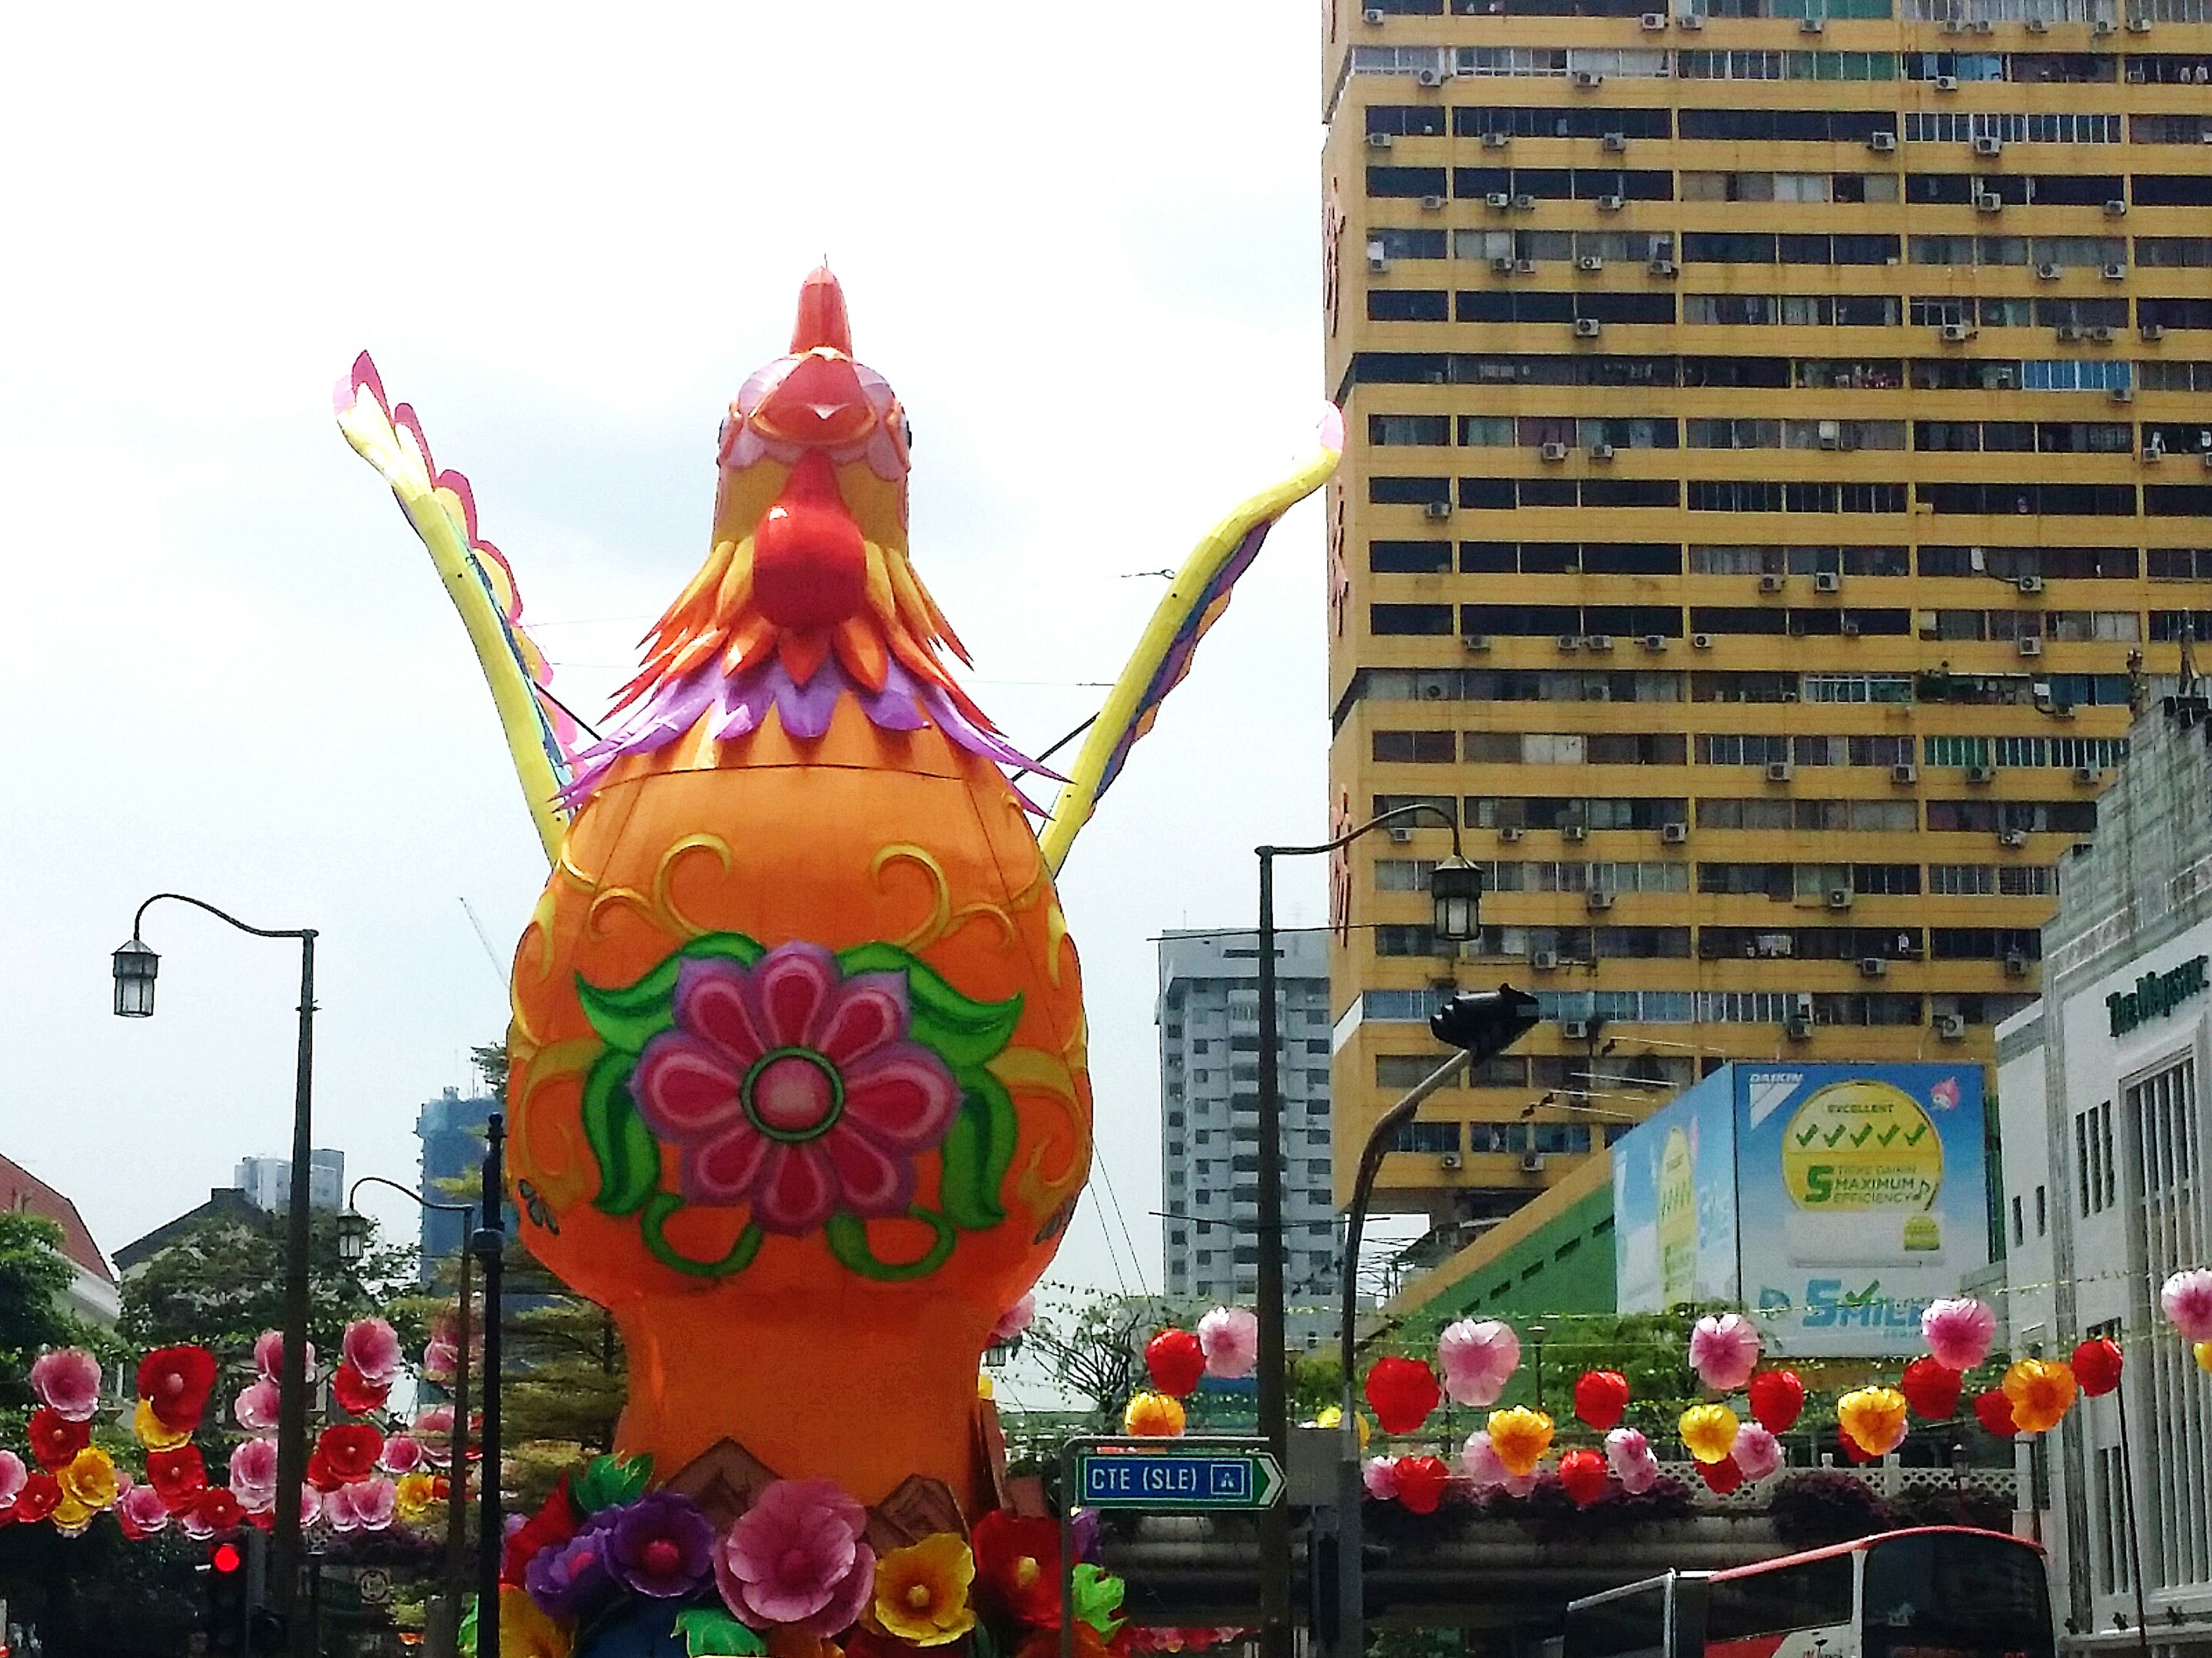 city, building exterior, architecture, statue, travel destinations, celebration, built structure, outdoors, chinese new year, sky, large group of people, sculpture, cityscape, chinese lantern festival, skyscraper, day, people, annual event, astrology sign